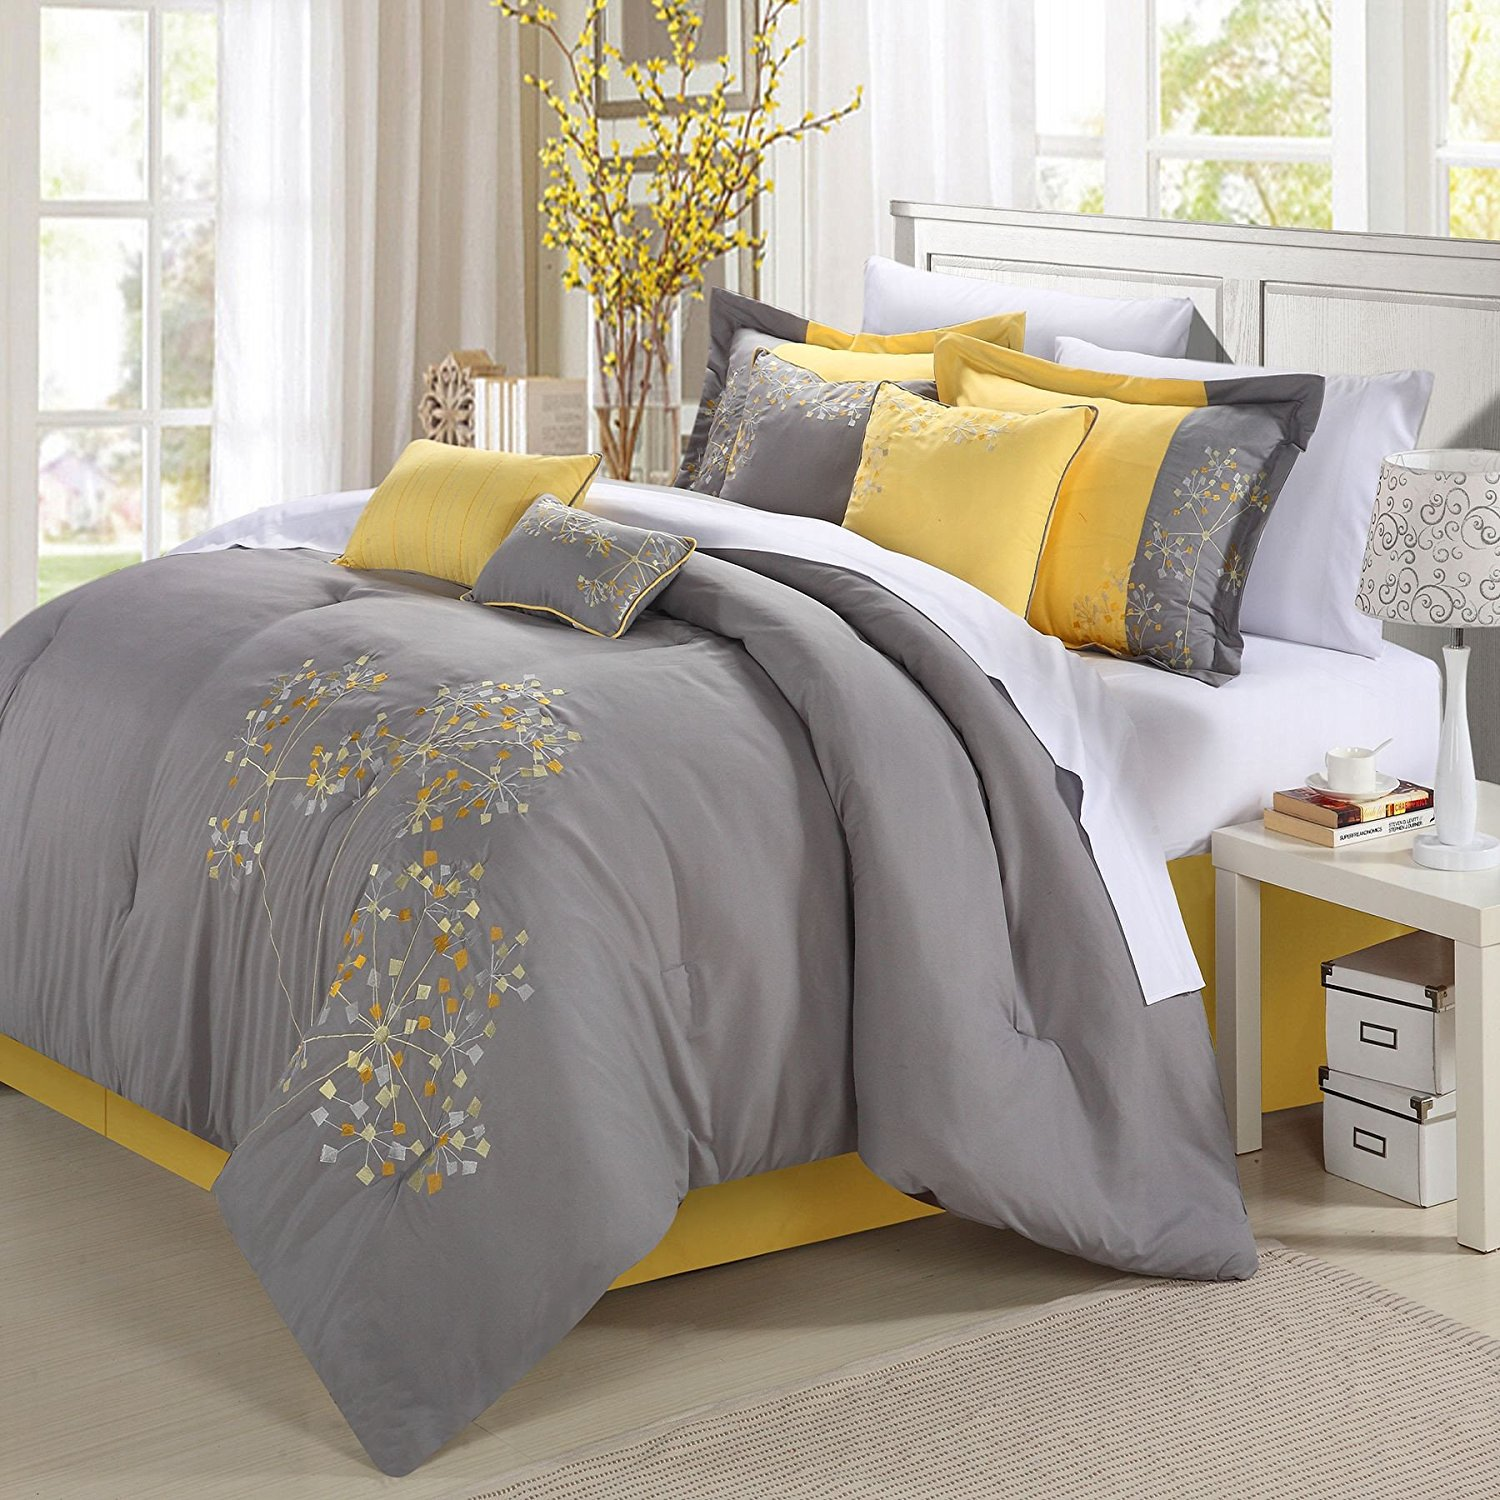 NEW Chic Home 8-Piece Embroidery Comforter Set, Queen, Pink Floral Yellow